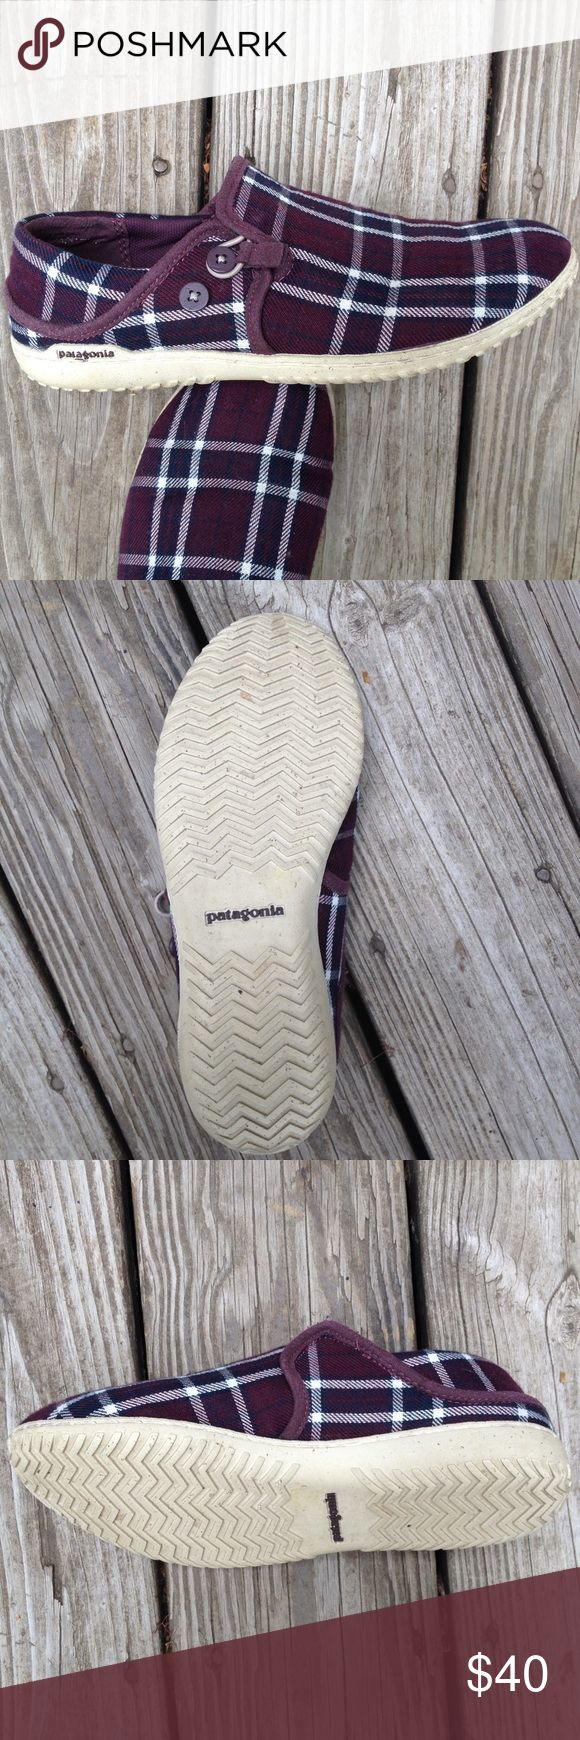 Patagonia // slip on shoes Great condition Patagonia slip ons. Size 7, super comfortable! Patagonia Shoes